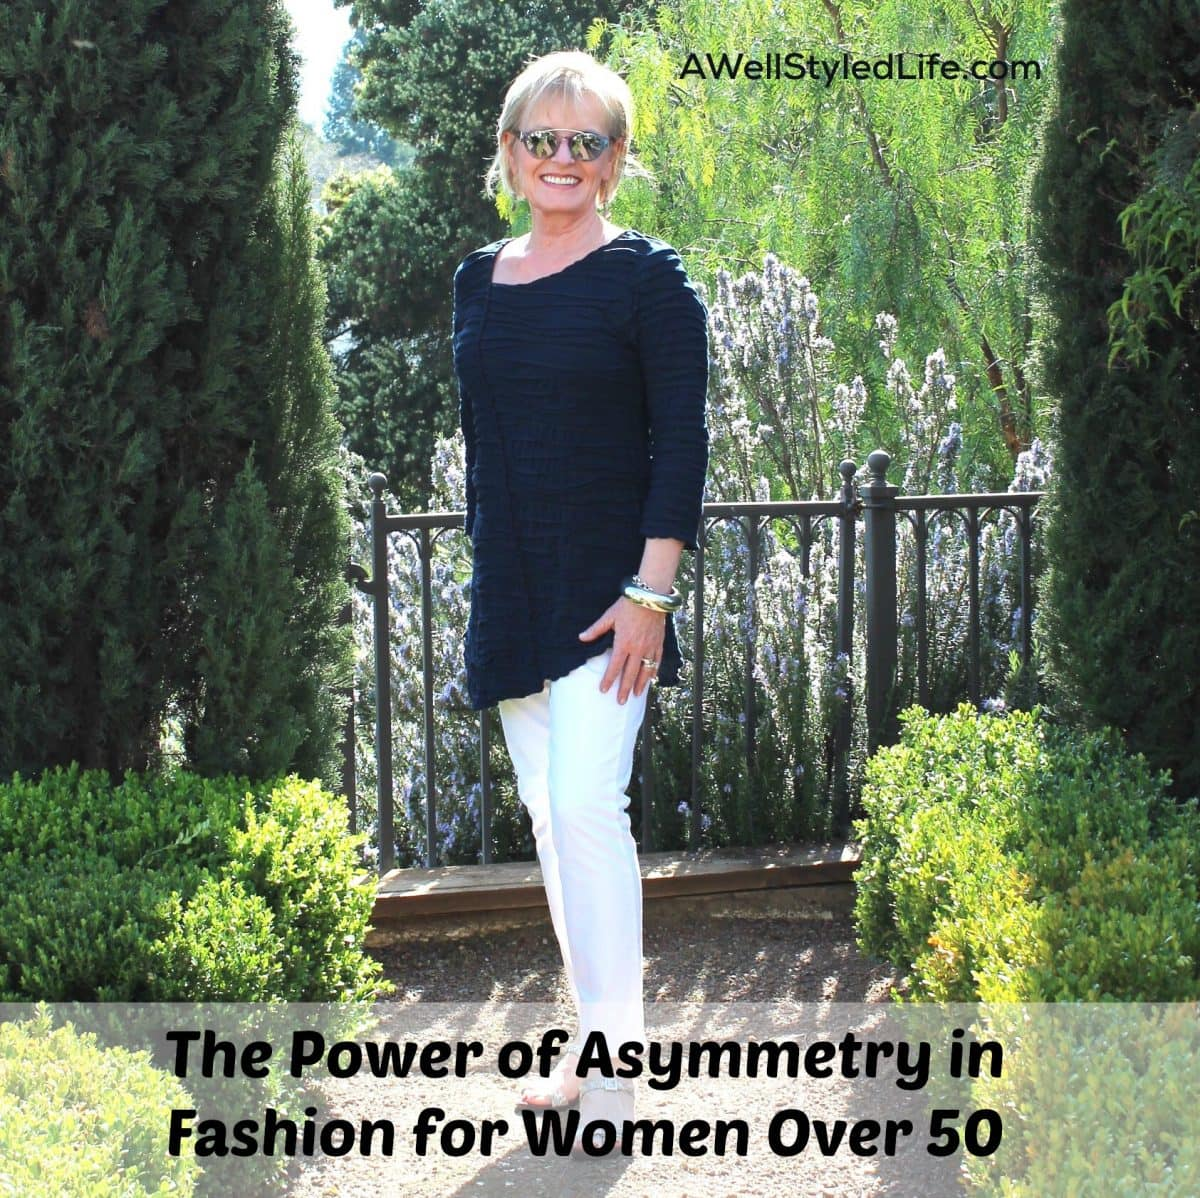 Clothing line for women over 50